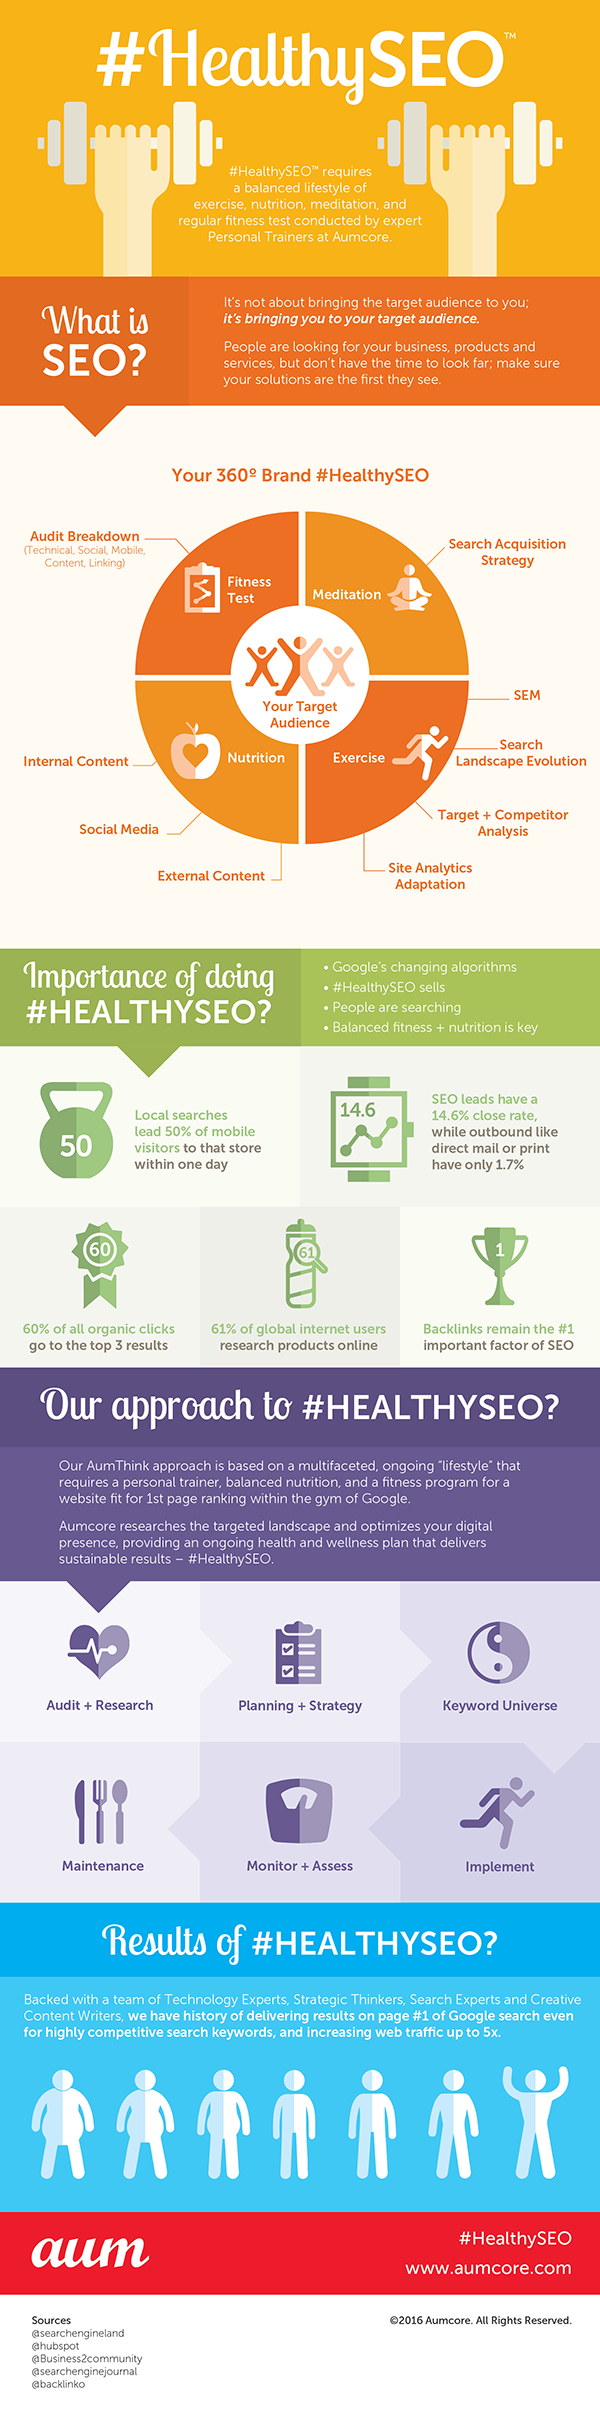 Healthy SEO - An Infographic from Aumcore